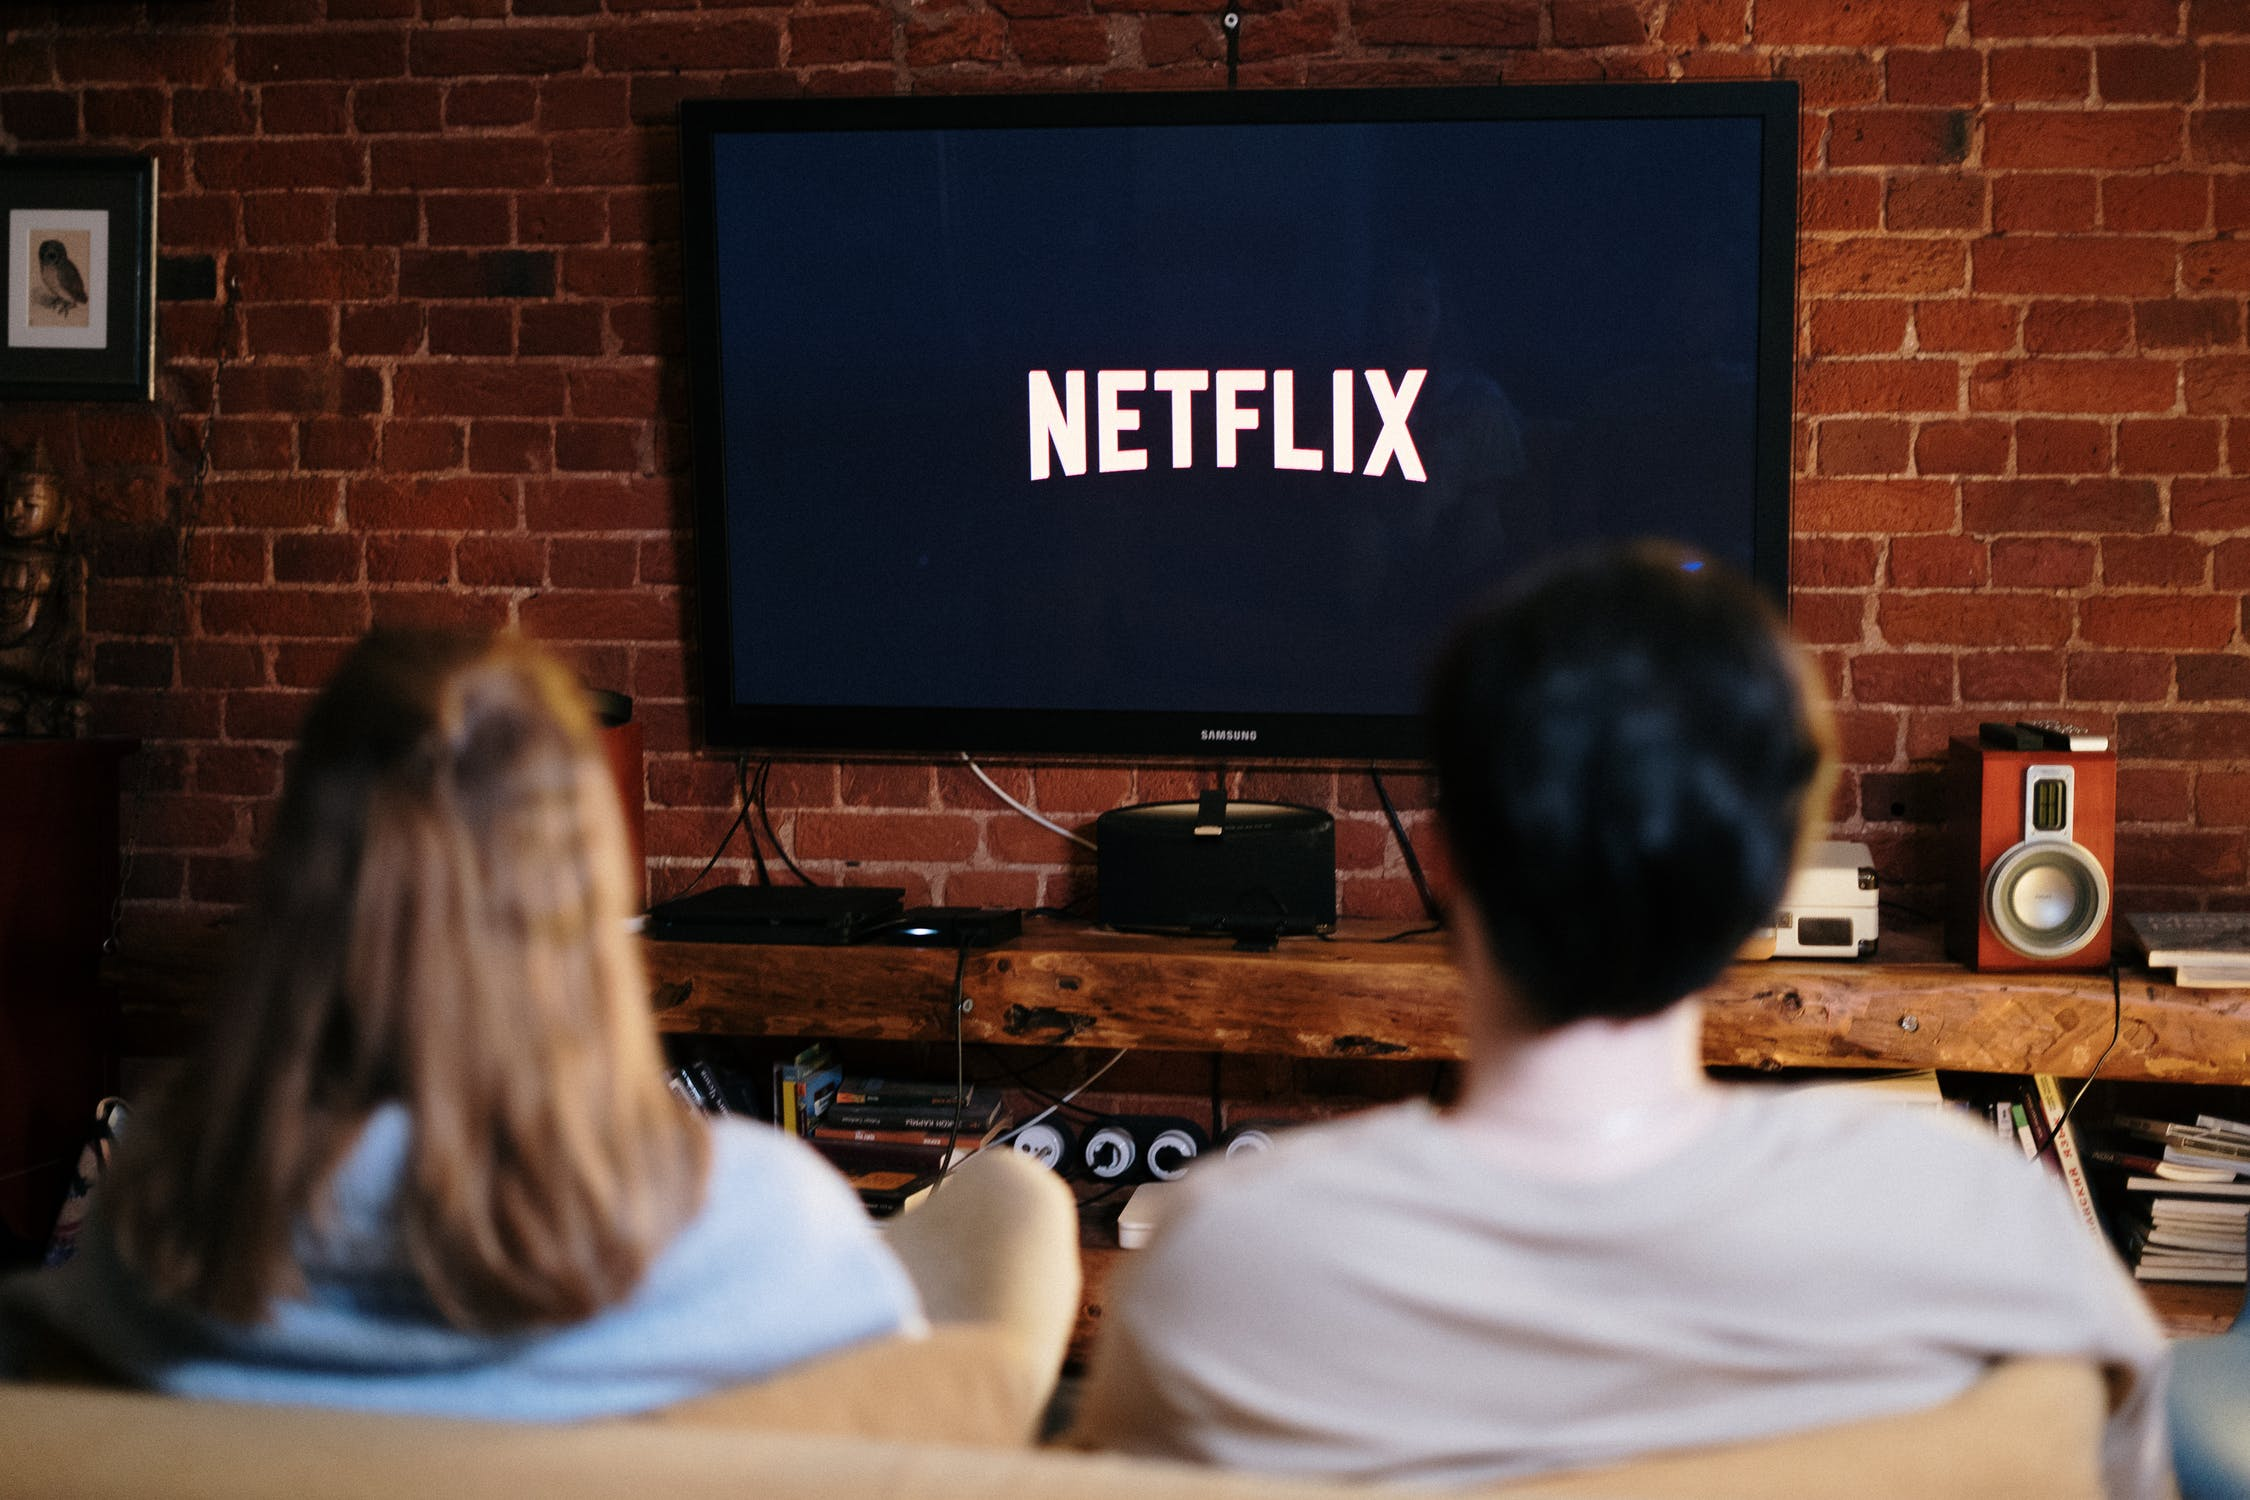 Netflix-subscription-cancelation-news